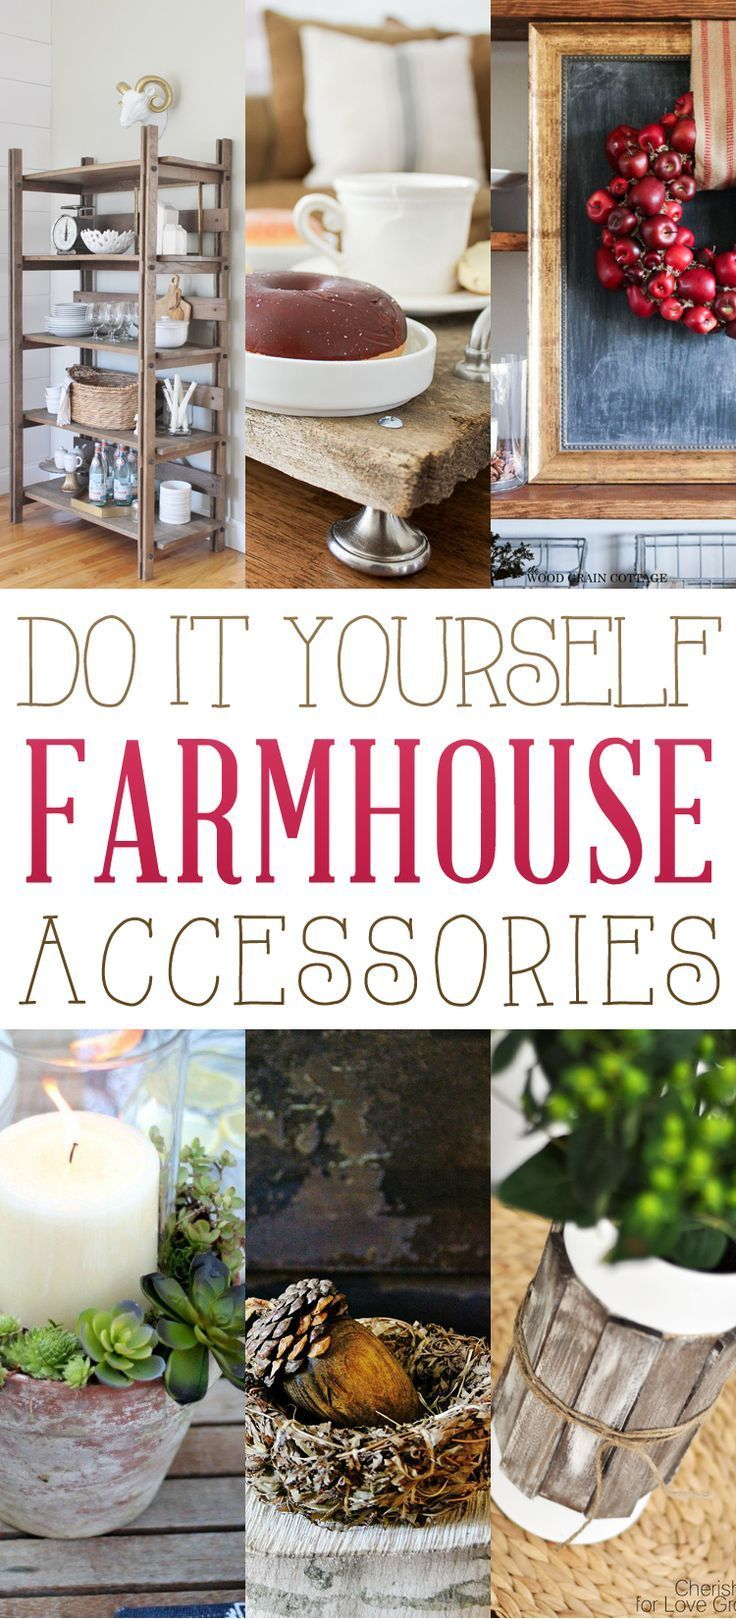 306 best diy home decor images on pinterest home ideas are you in the mood for some delightful diy farmhouse accessories well if the answer is yes sit back have a cuppa and enjoy solutioingenieria Images